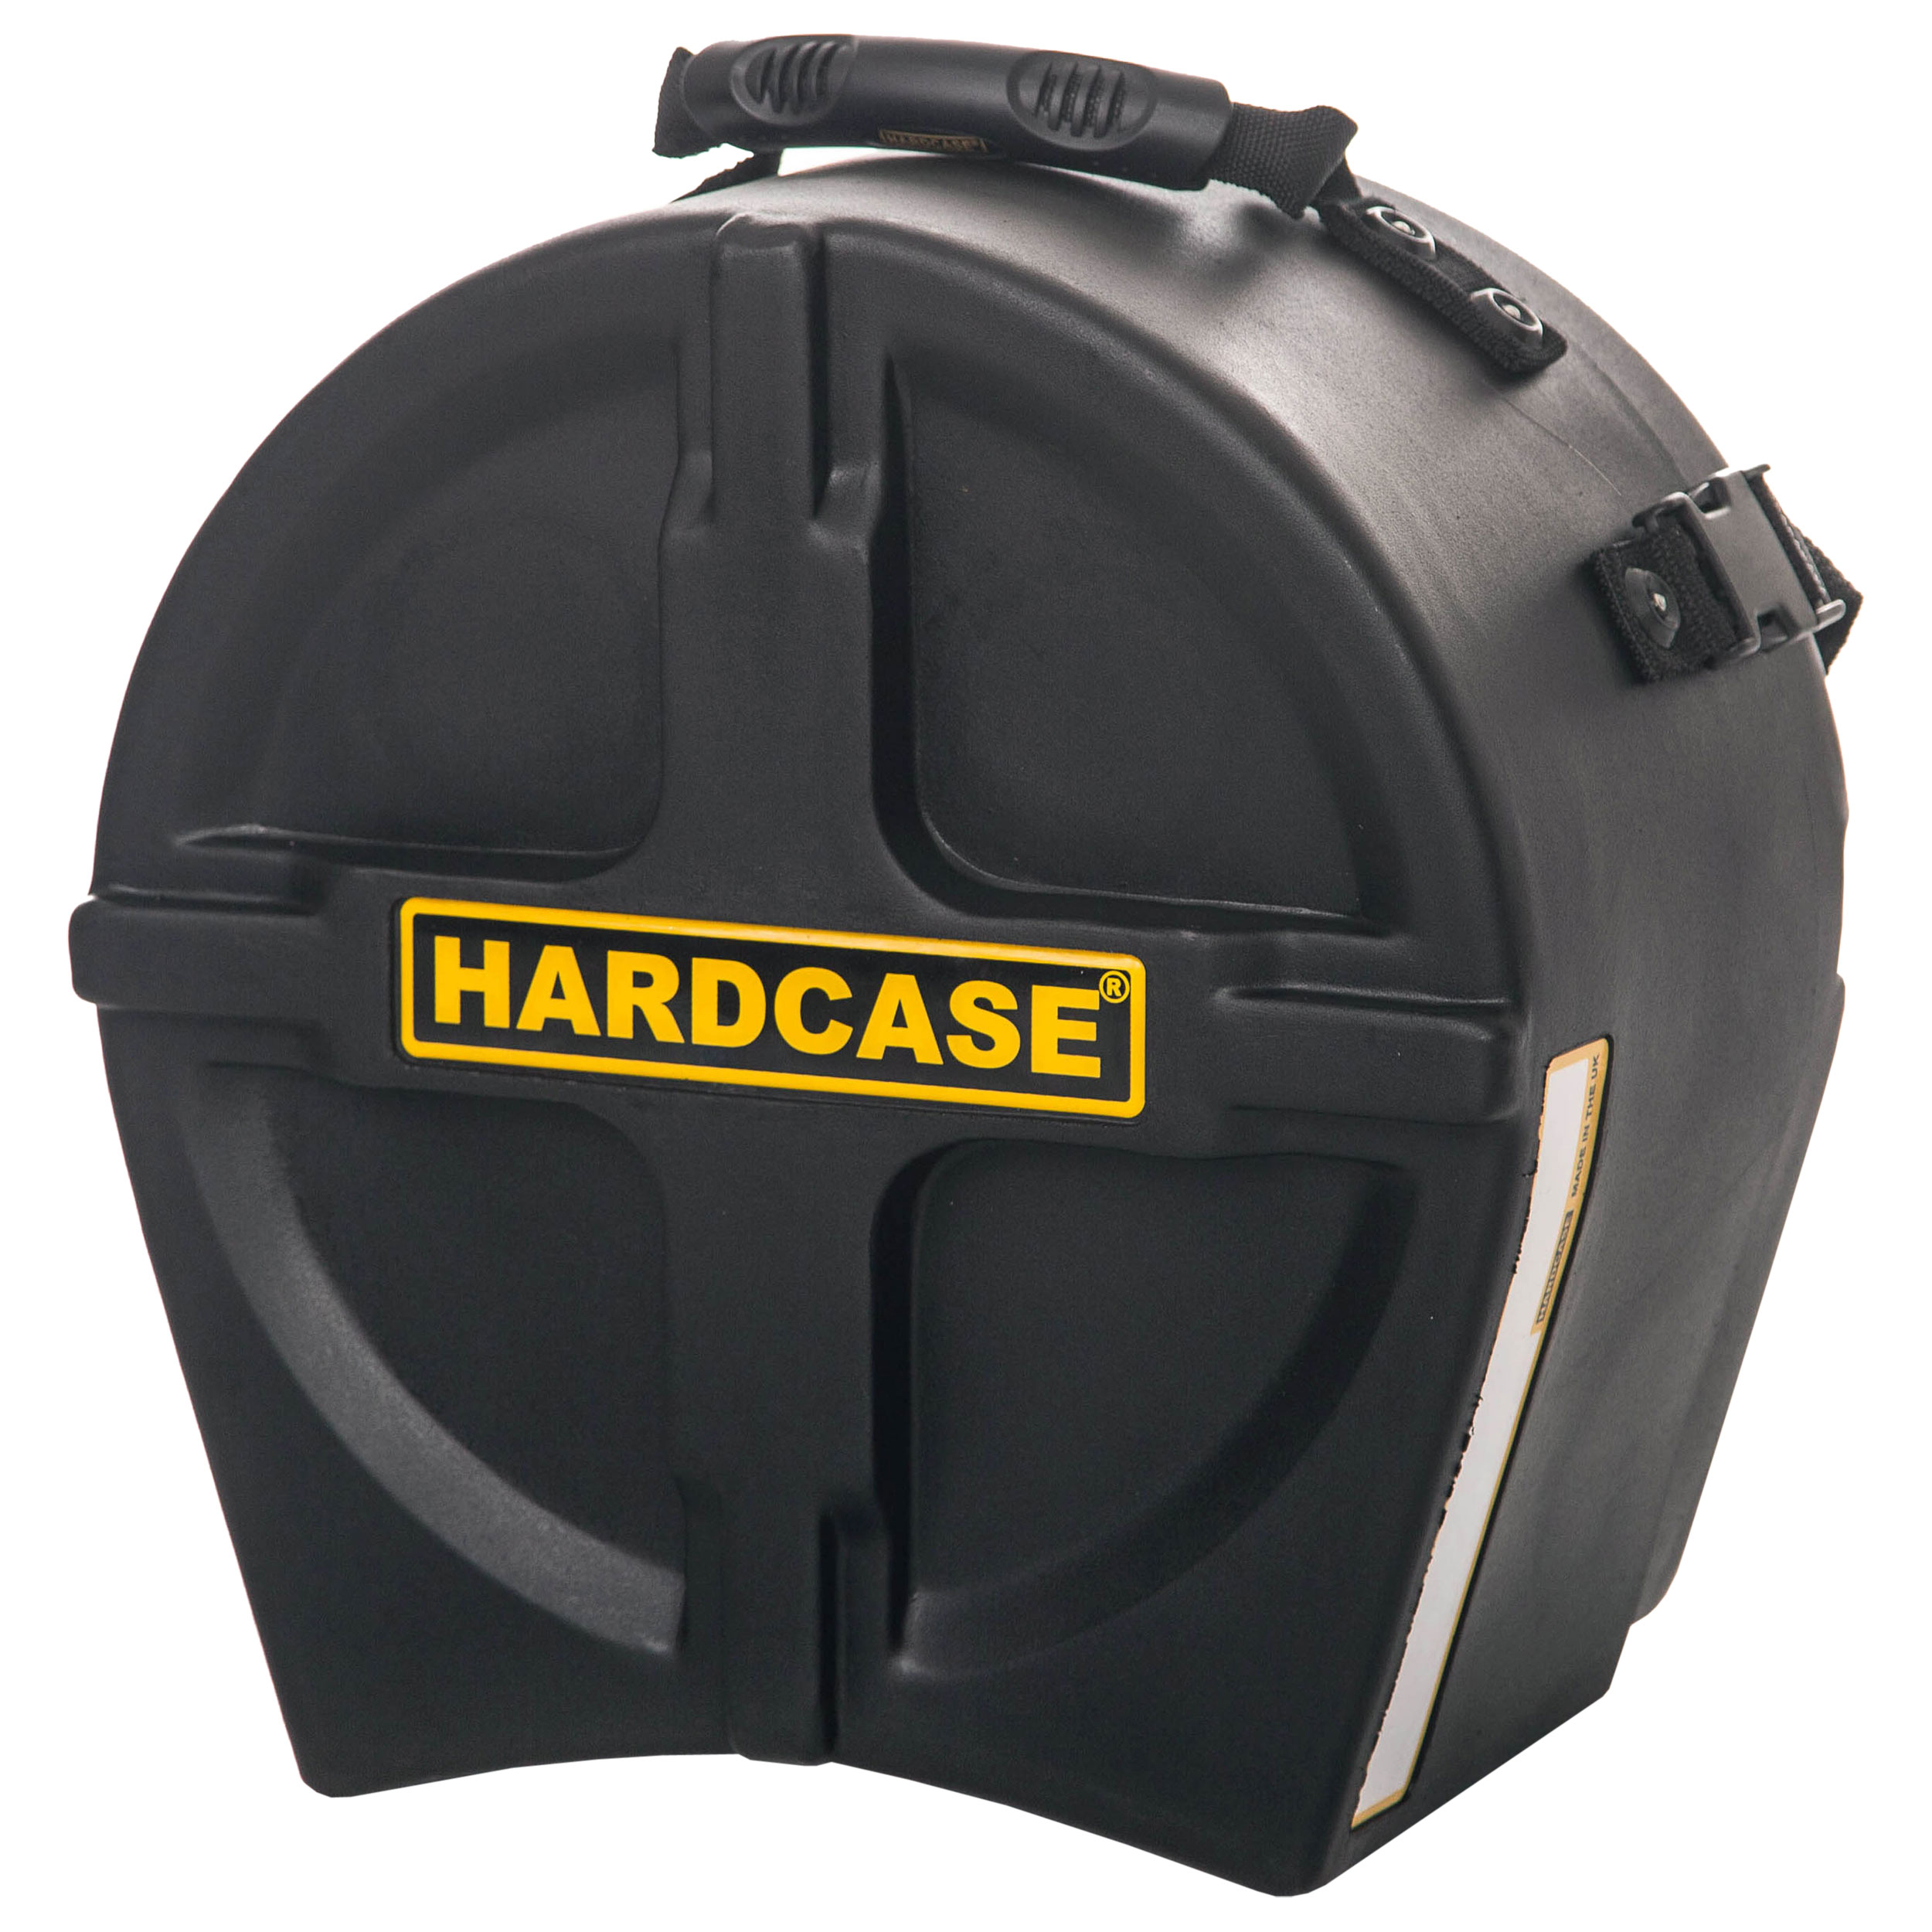 "Hardcase 10"" (Diameter) x 8-to-10"" (Deep) Tom Case"